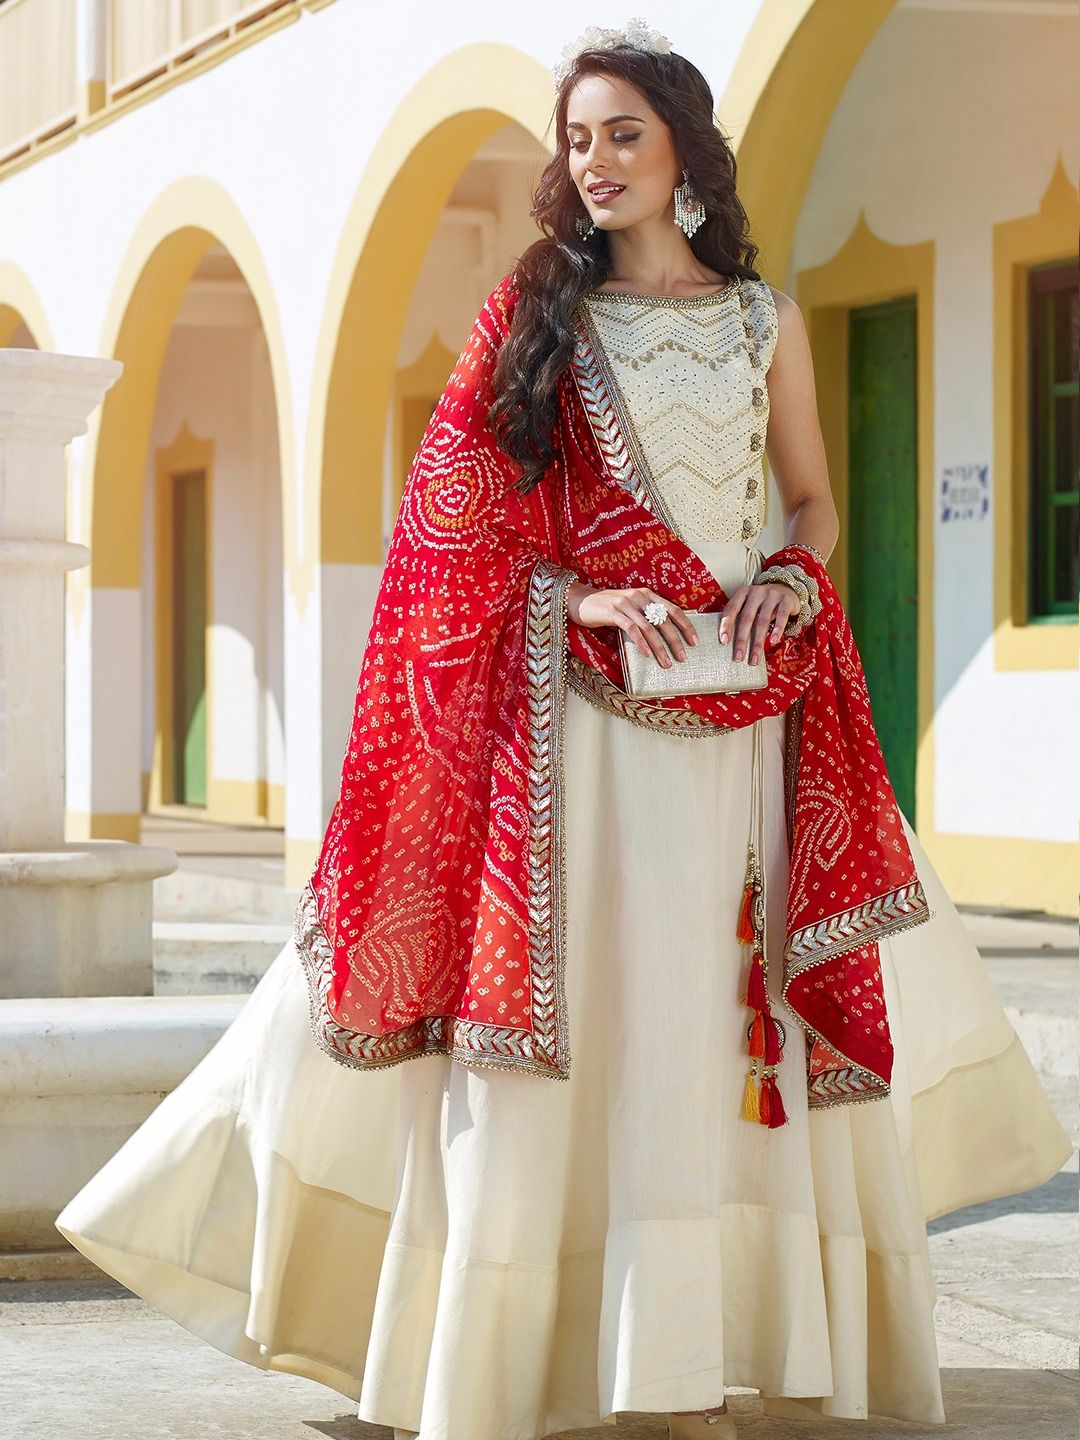 ad97c6d692 Shop Anarkali suit silk in cream color online from G3fashion India. Brand -  G3, Product code - G3-WSS00255, Price - 8295, Color - Cream, Fabric - Silk,